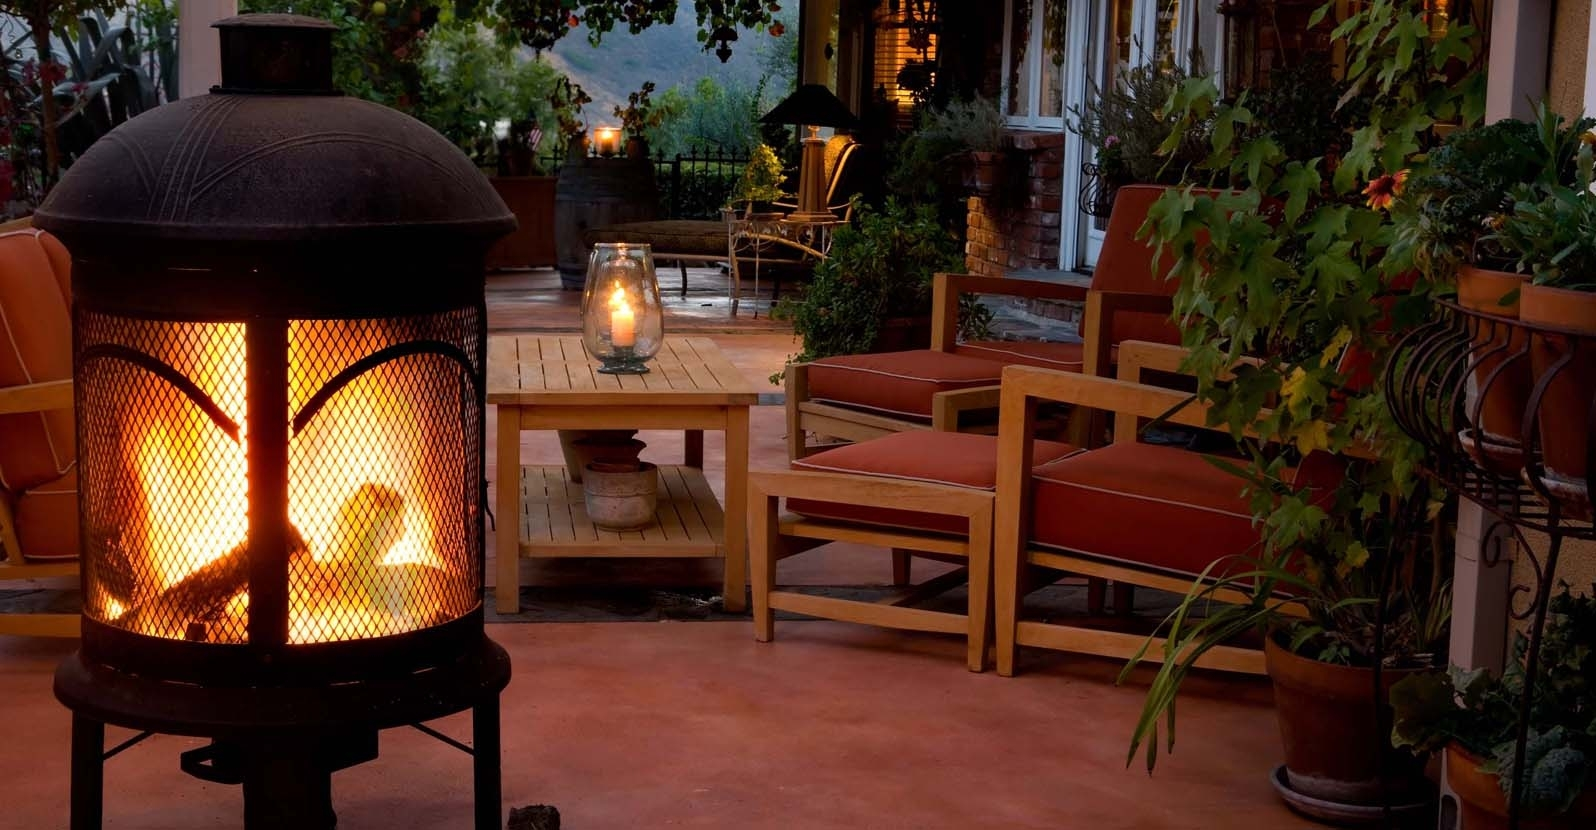 3 Ways to Create a Cozy Fire Pit Area